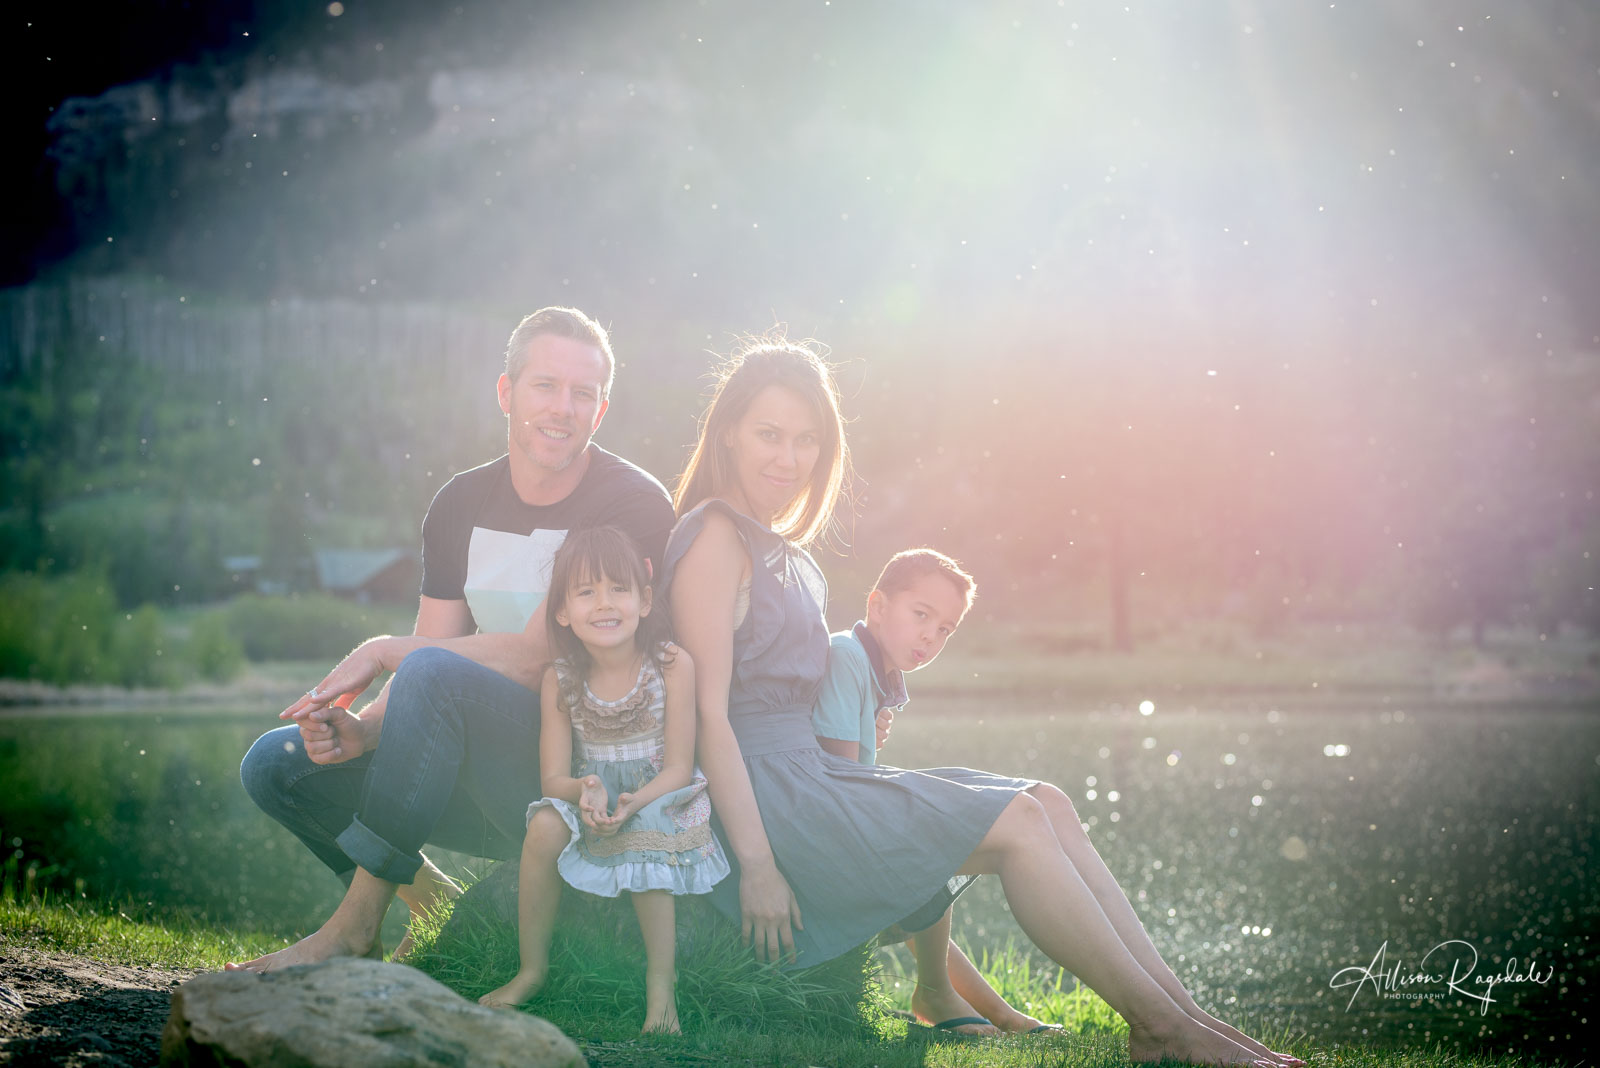 professional outdoor family portraits in Durango Colorado  by Allison Ragsdale Photography